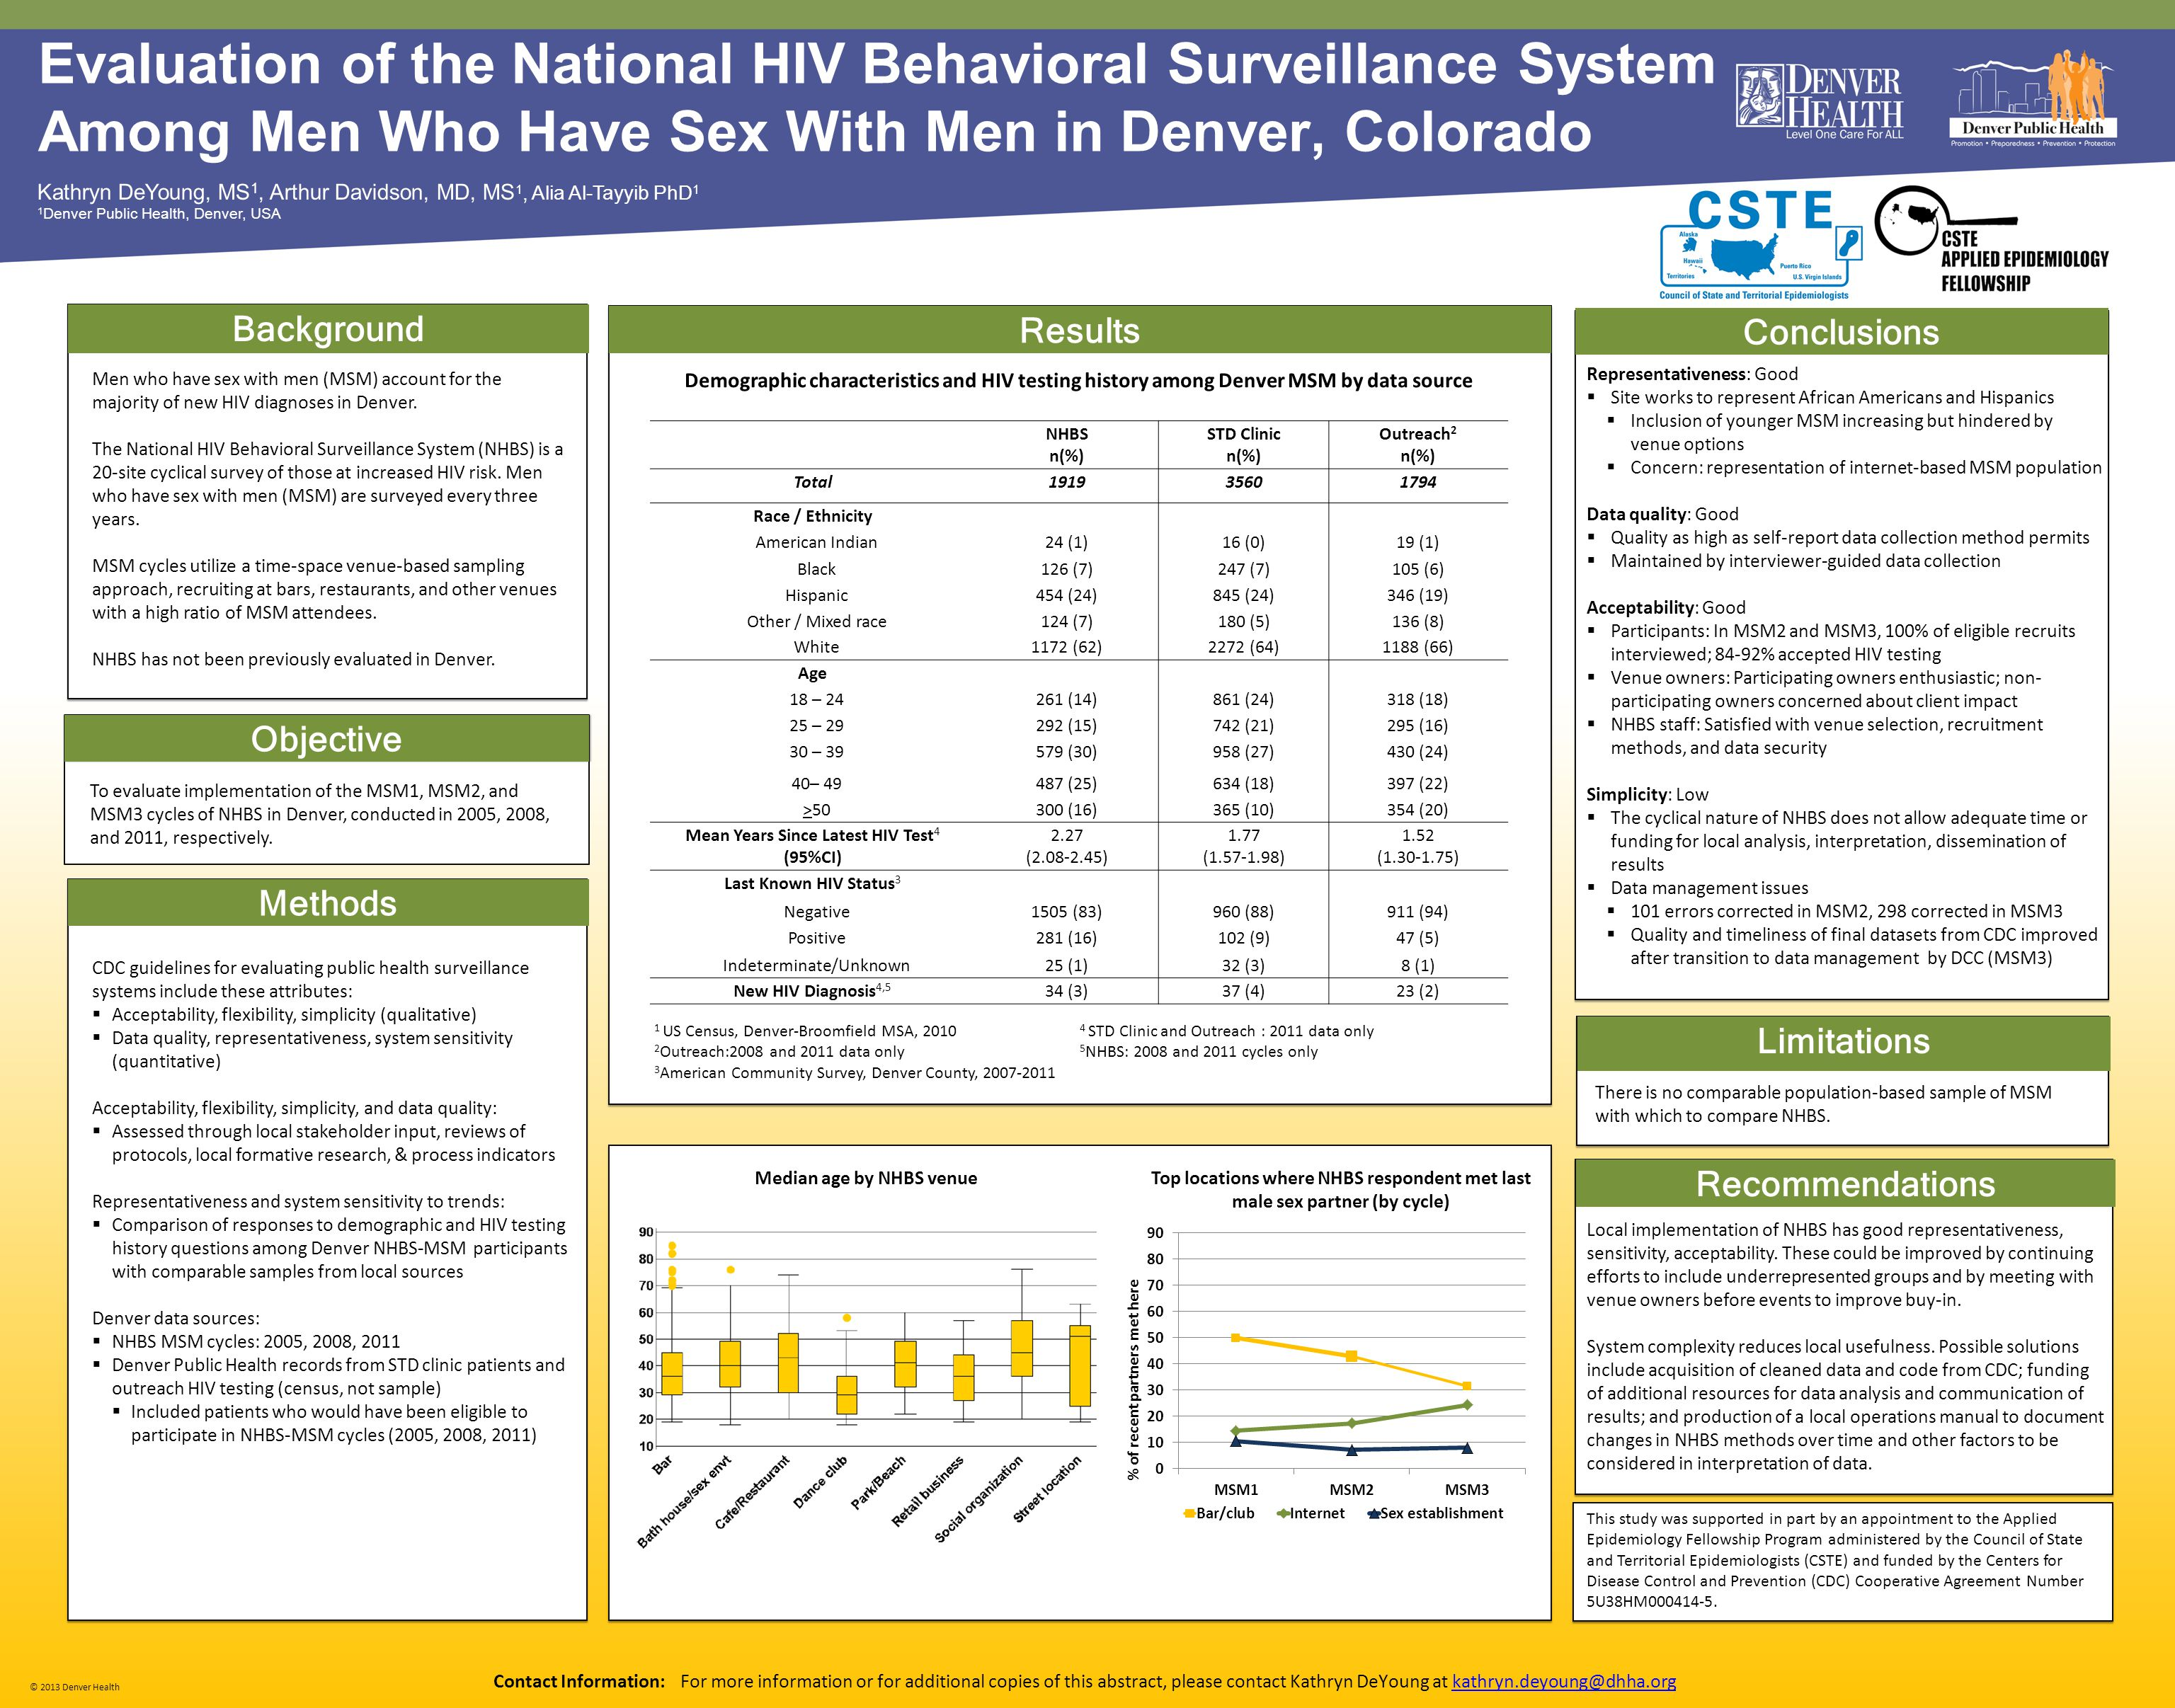 © 2013 Denver Health Evaluation of the National HIV Behavioral Surveillance System Among Men Who Have Sex With Men in Denver, Colorado Kathryn DeYoung, MS 1, Arthur Davidson, MD, MS 1, Alia Al-Tayyib PhD 1 1 Denver Public Health, Denver, USA Results Conclusions Contact Information: For more information or for additional copies of this abstract, please contact Kathryn DeYoung at kathryn.deyoung@dhha.orgkathryn.deyoung@dhha.org TIPS FOR POSTERS: [Do not adjust this area.